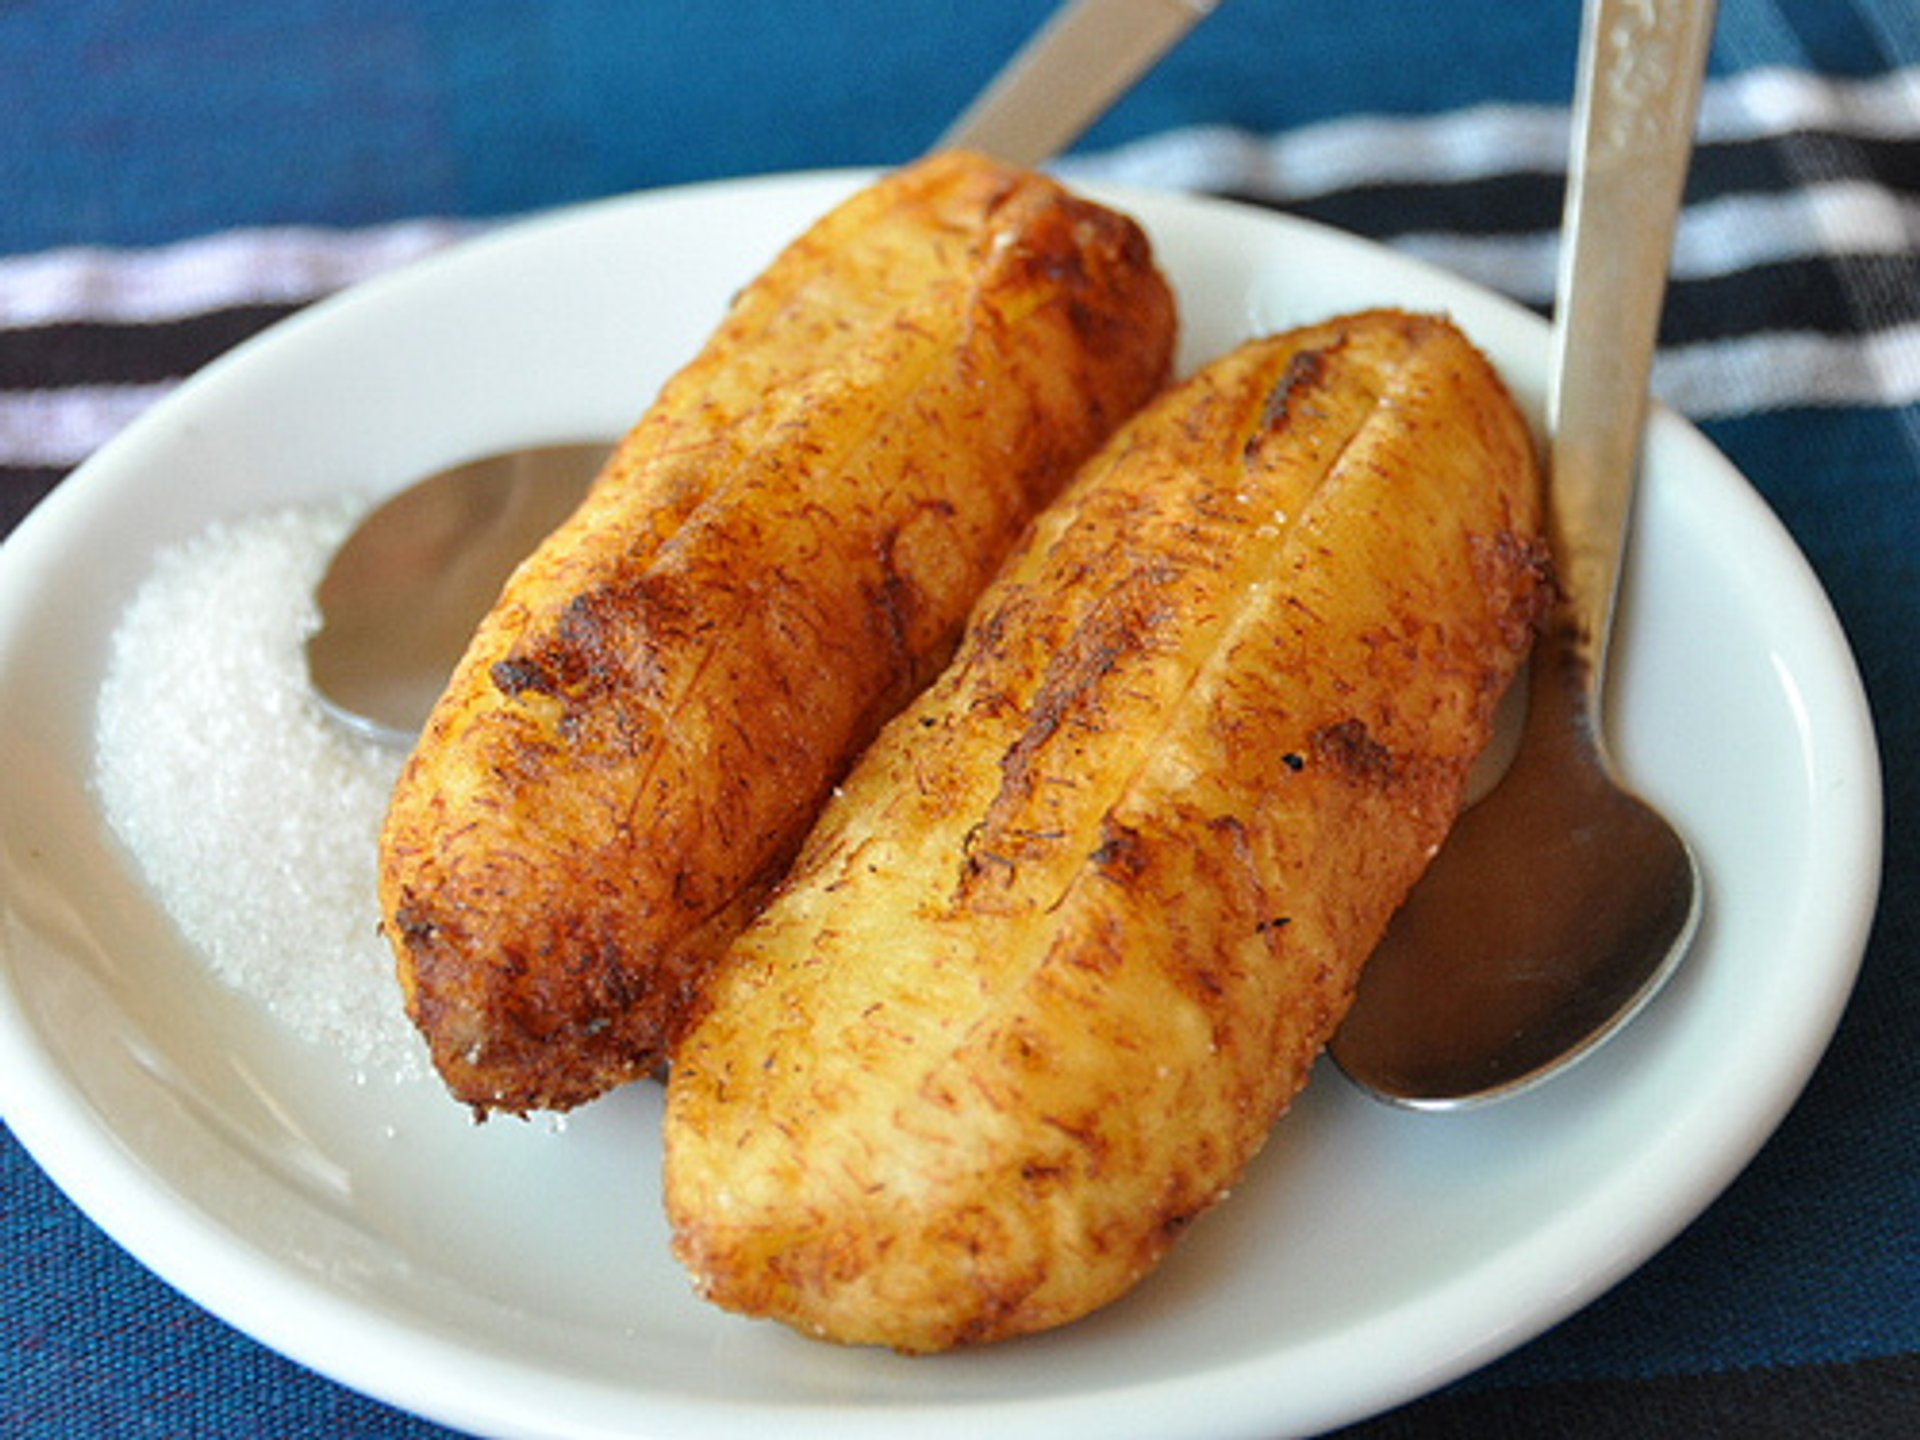 Fried bananas in Bagan 2020